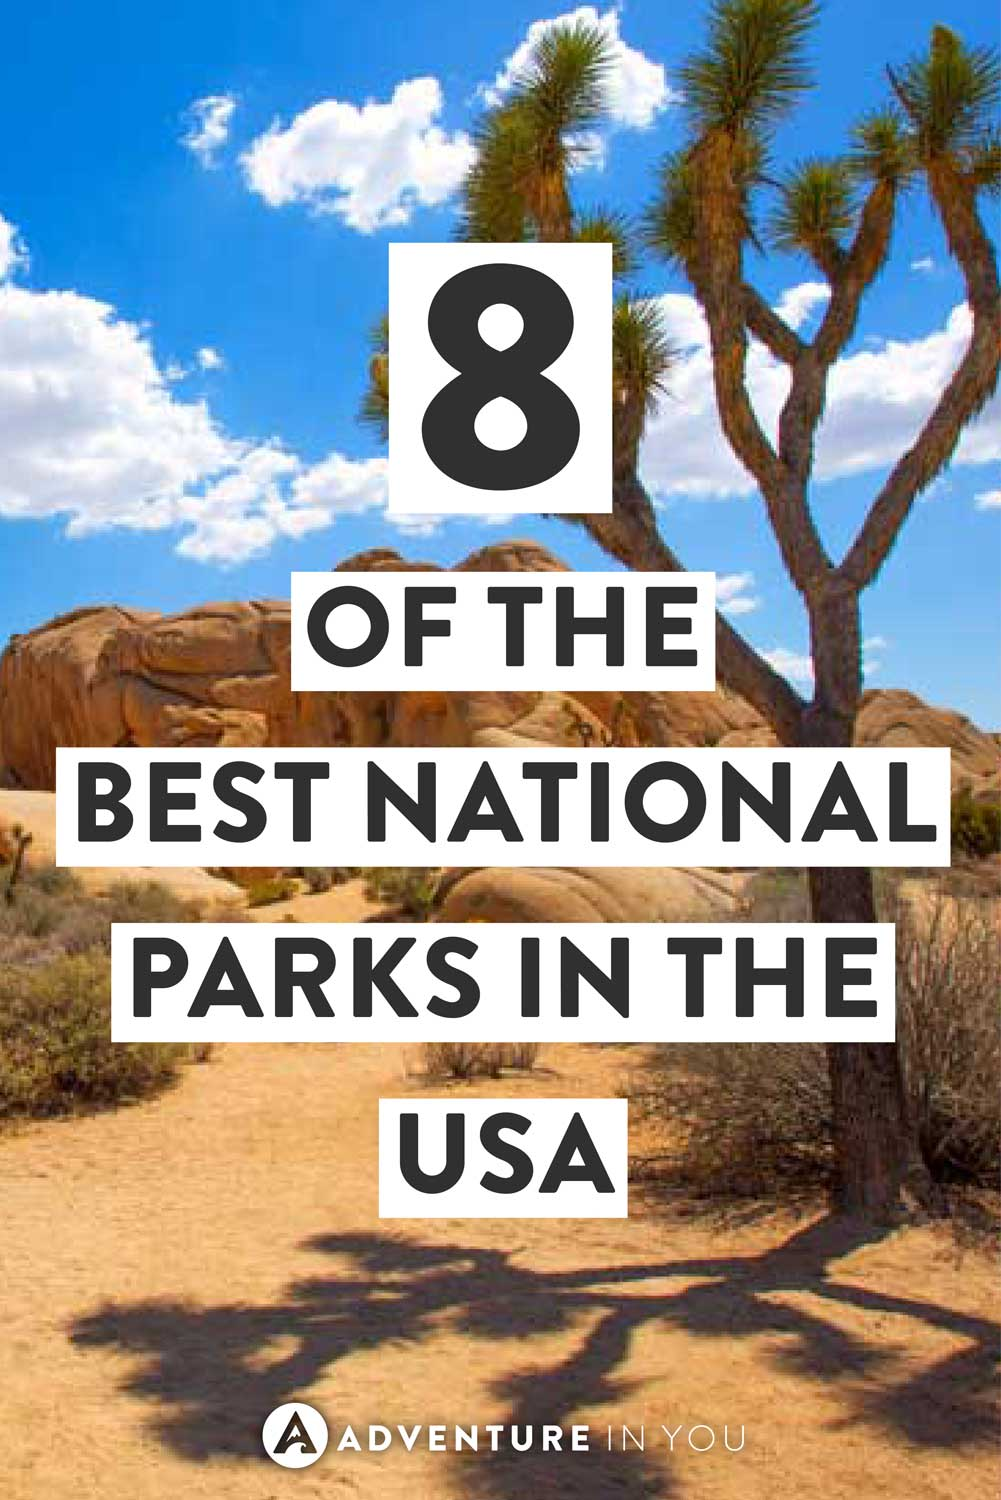 USA National Parks   Looking for the best national parks to visit? Here are 8 of the best ones that are worth adding to your bucket list! #usa #nationalparks